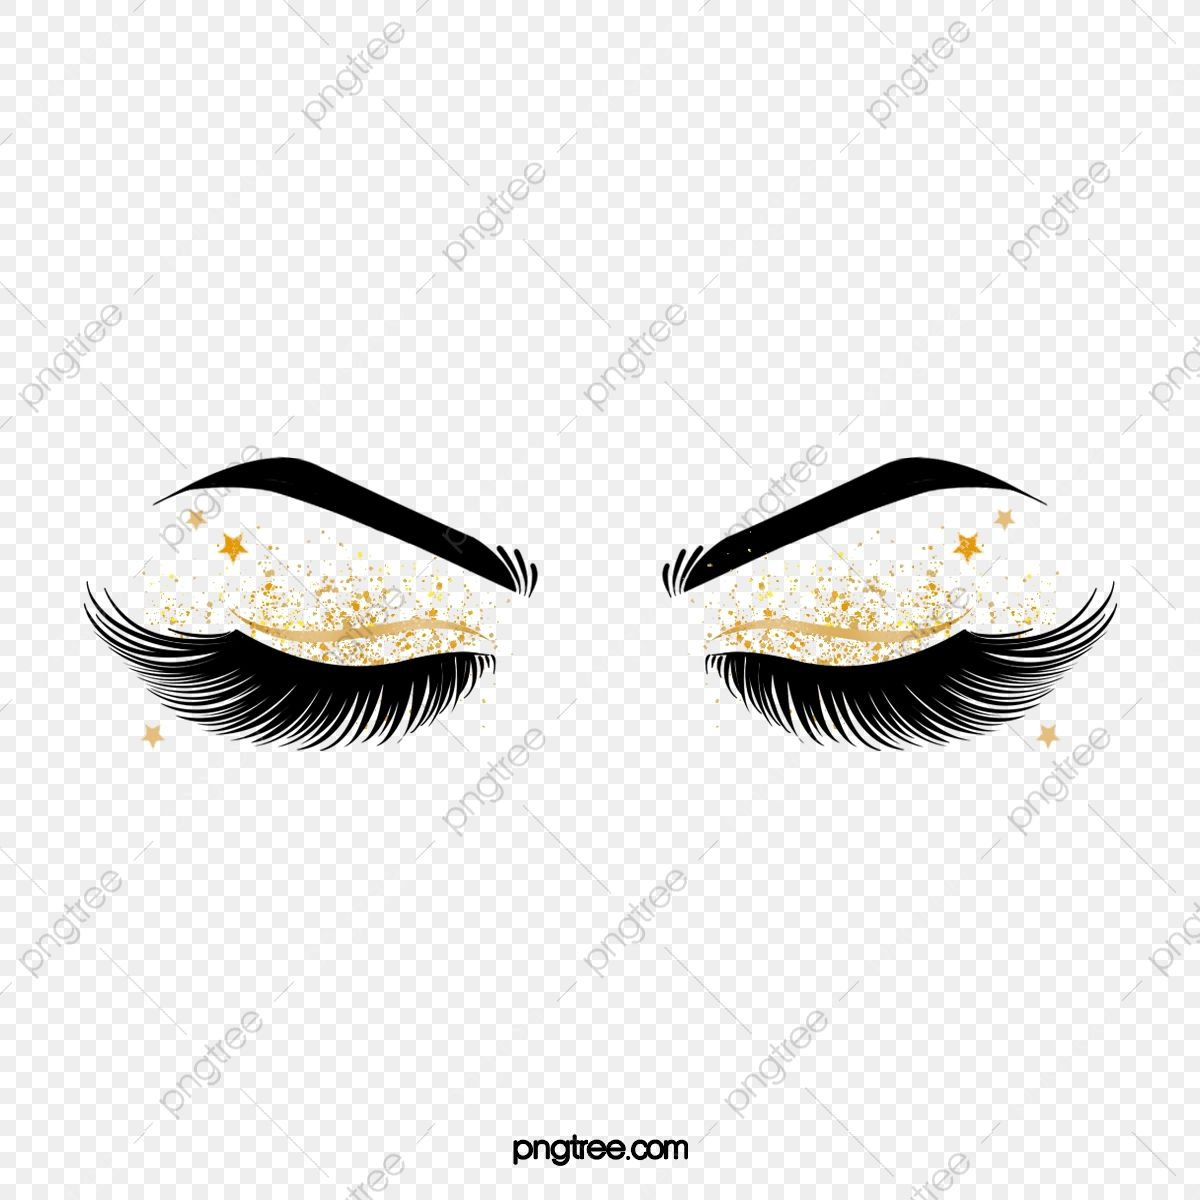 Hand Painted Black Curled Thick Eyelashes Star Eye Makeup Eyebrow Clipart Eyes Black And White Hand Painted Png Transparent Clipart Image And Psd File For F Thicker Eyelashes Star Eyes Black